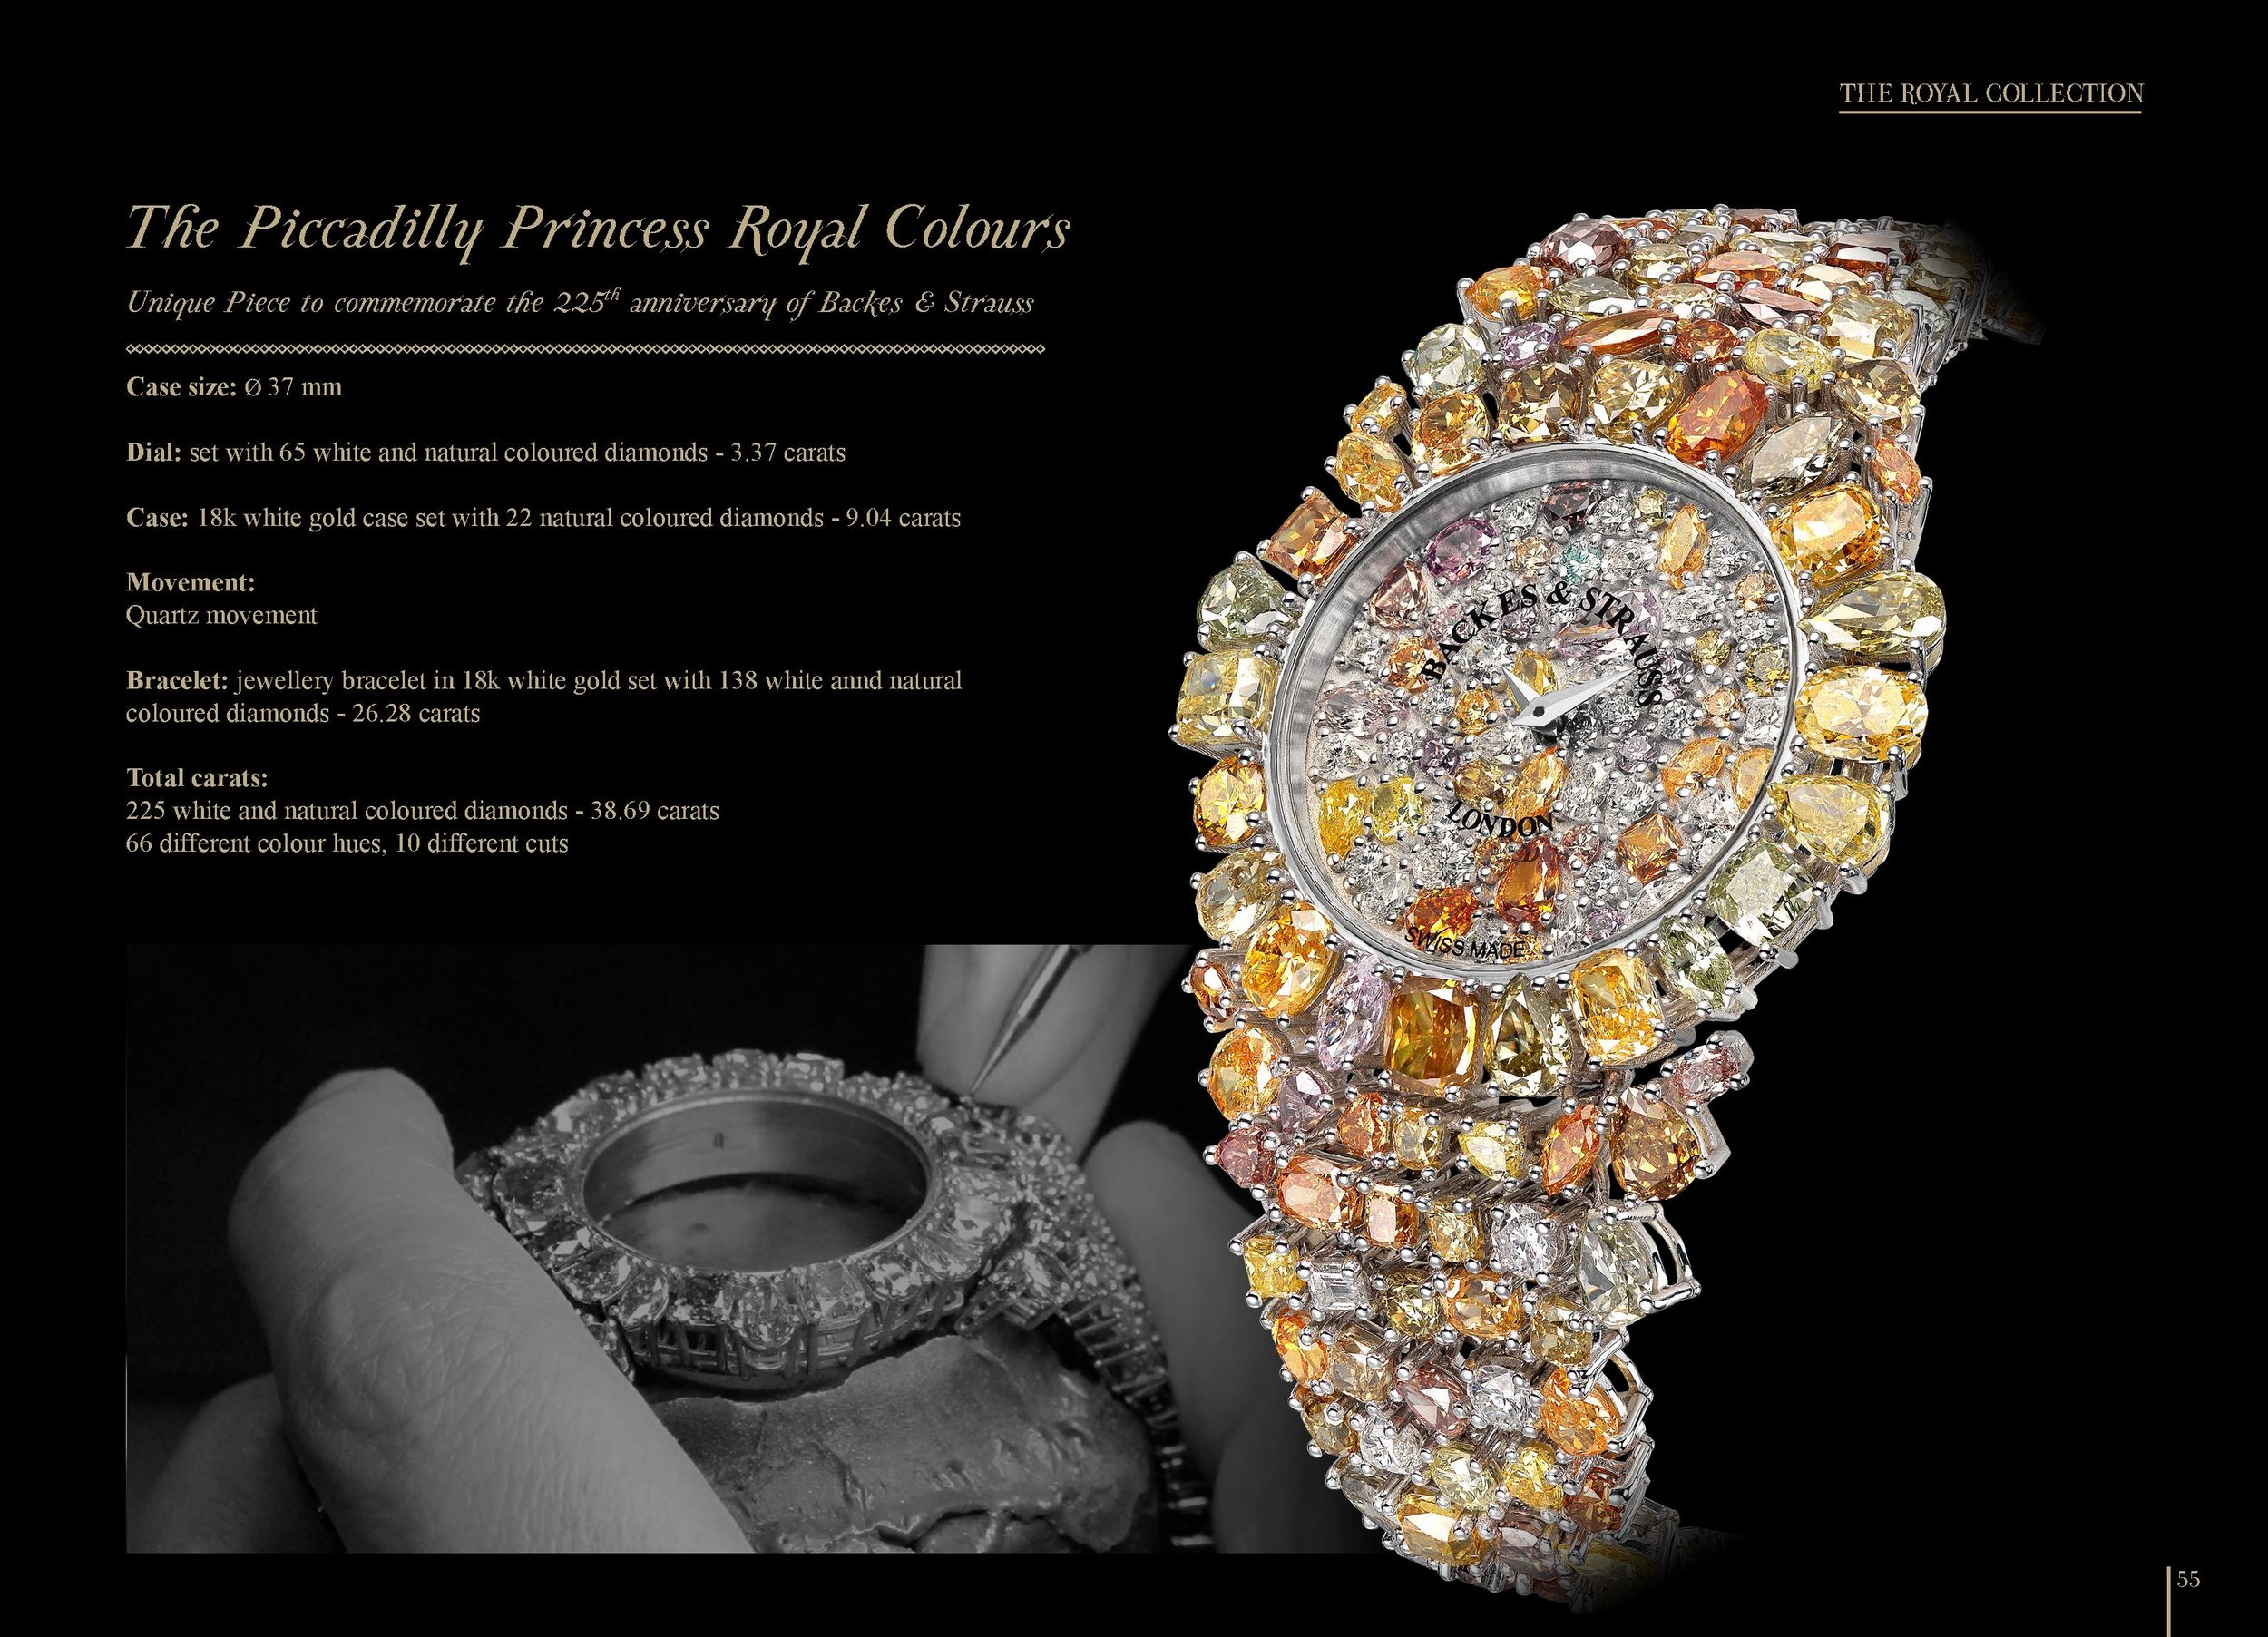 The Piccadilly Princess Royal Colours masterpiece